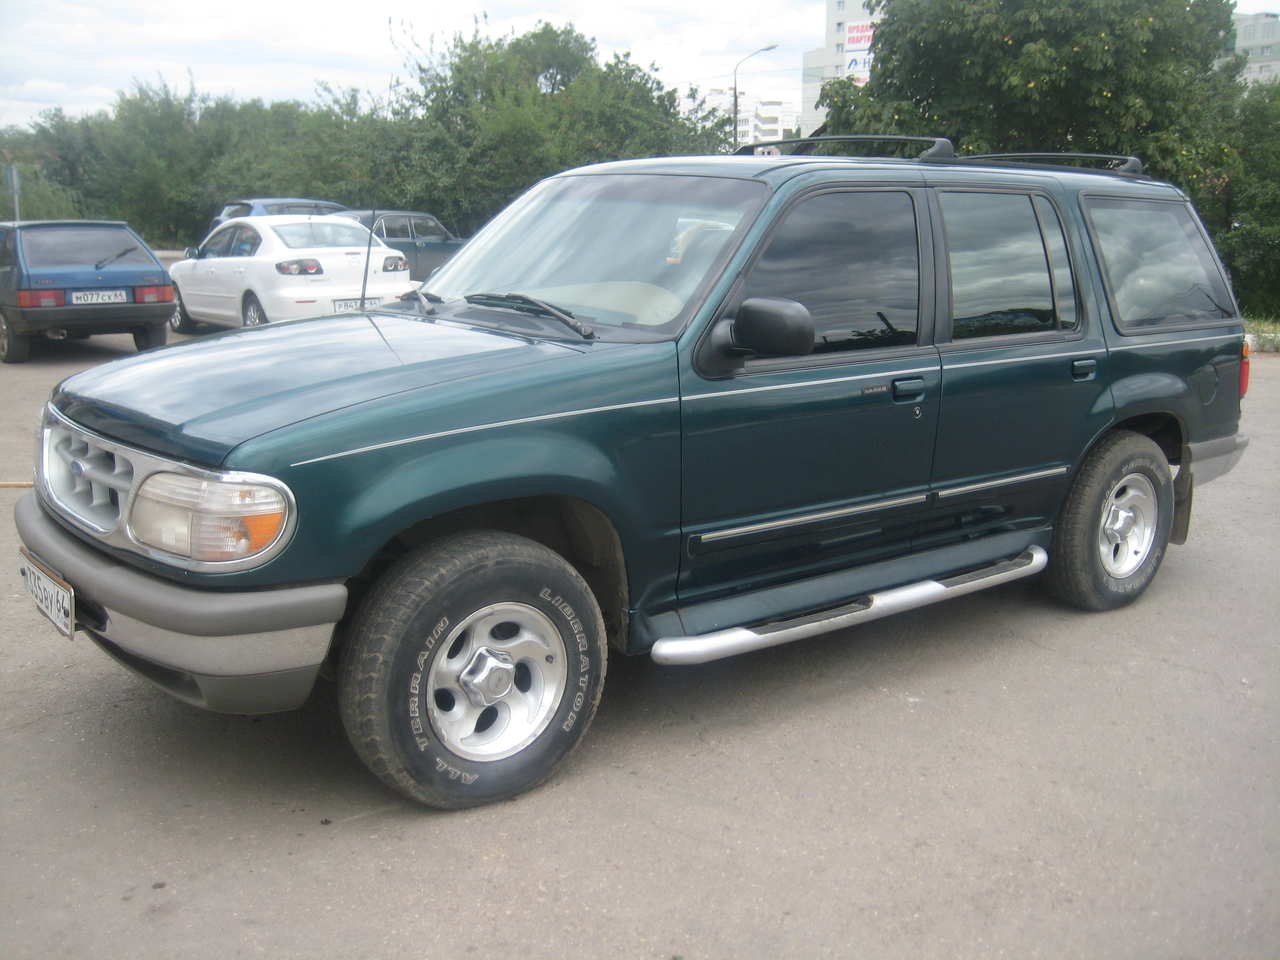 hight resolution of ford explorer 4 0 1995 photo 12